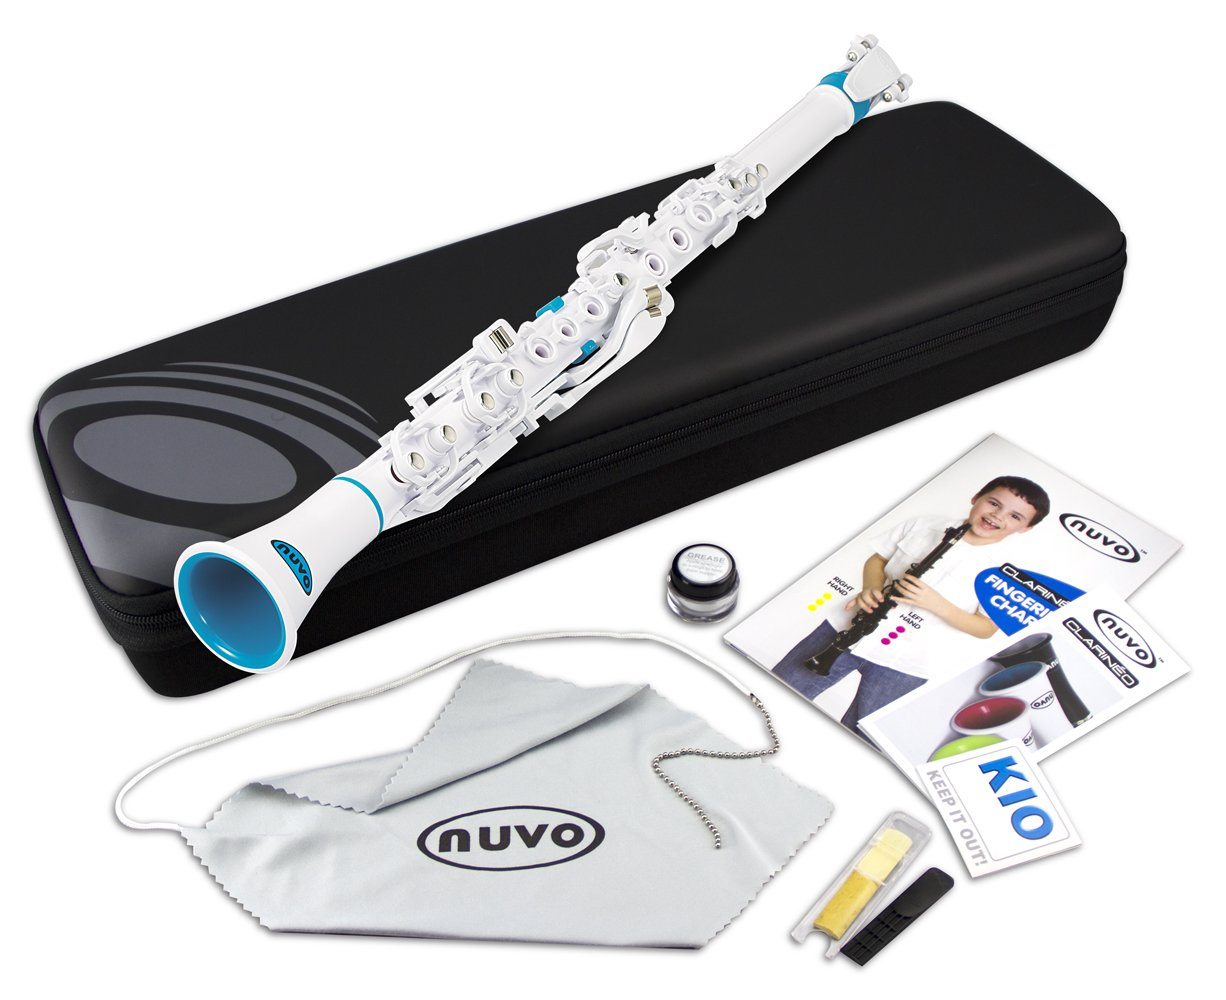 Nuvo N100CLBK Clarineo Kit with Case and Accessories - Black with Stainless Steel Collars Nuvo Instrumental-(Asia) Ltd.